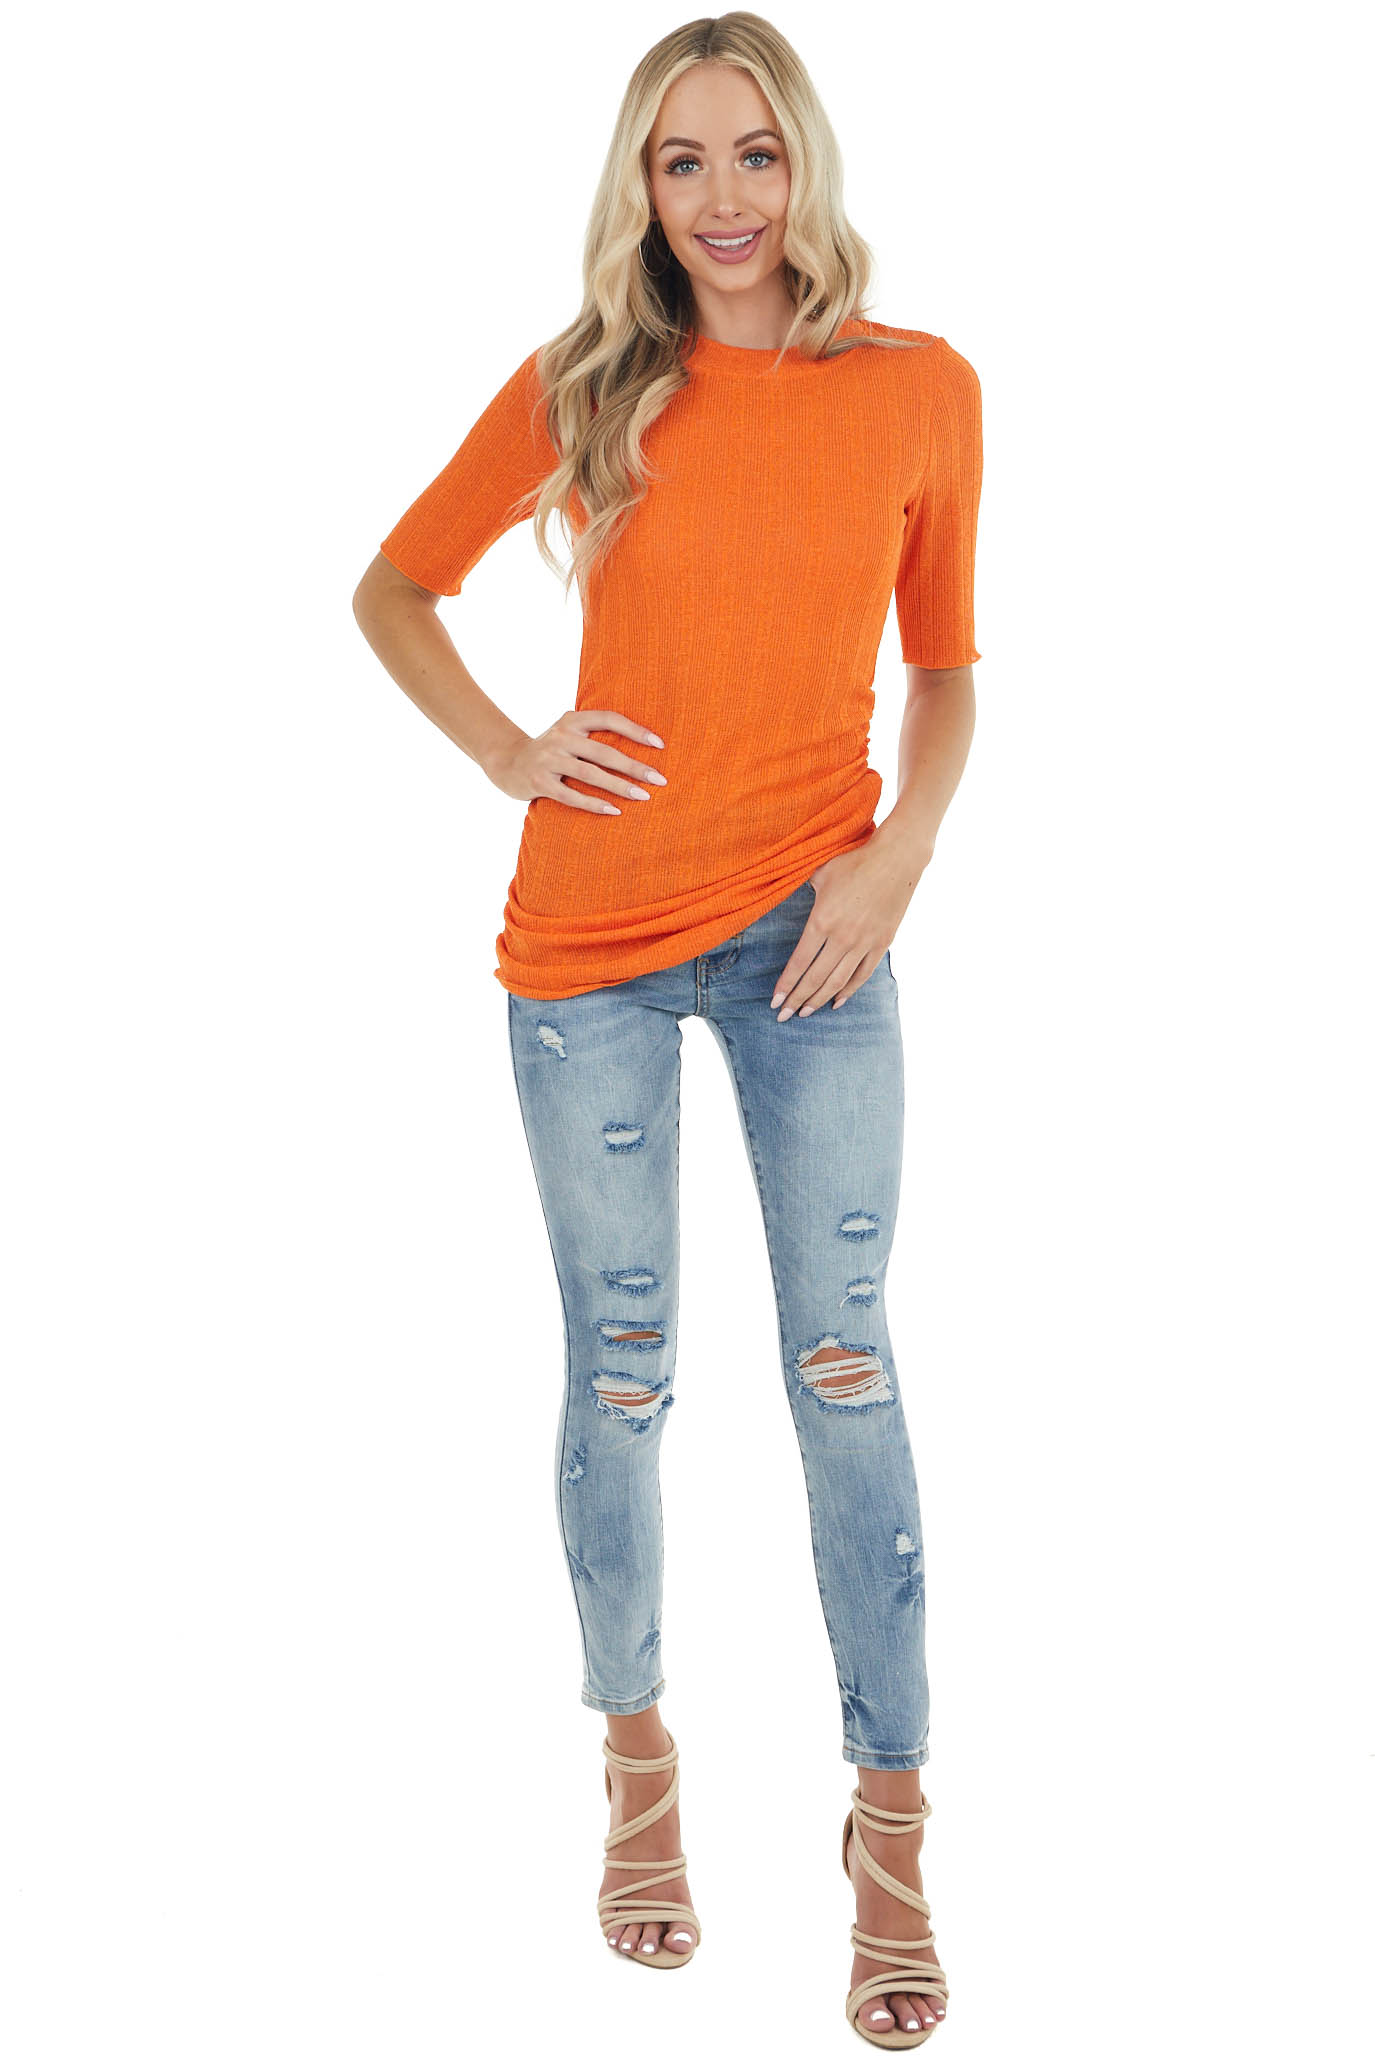 Tiger Orange Half Sleeve Ribbed Knit Top with Side Ruching